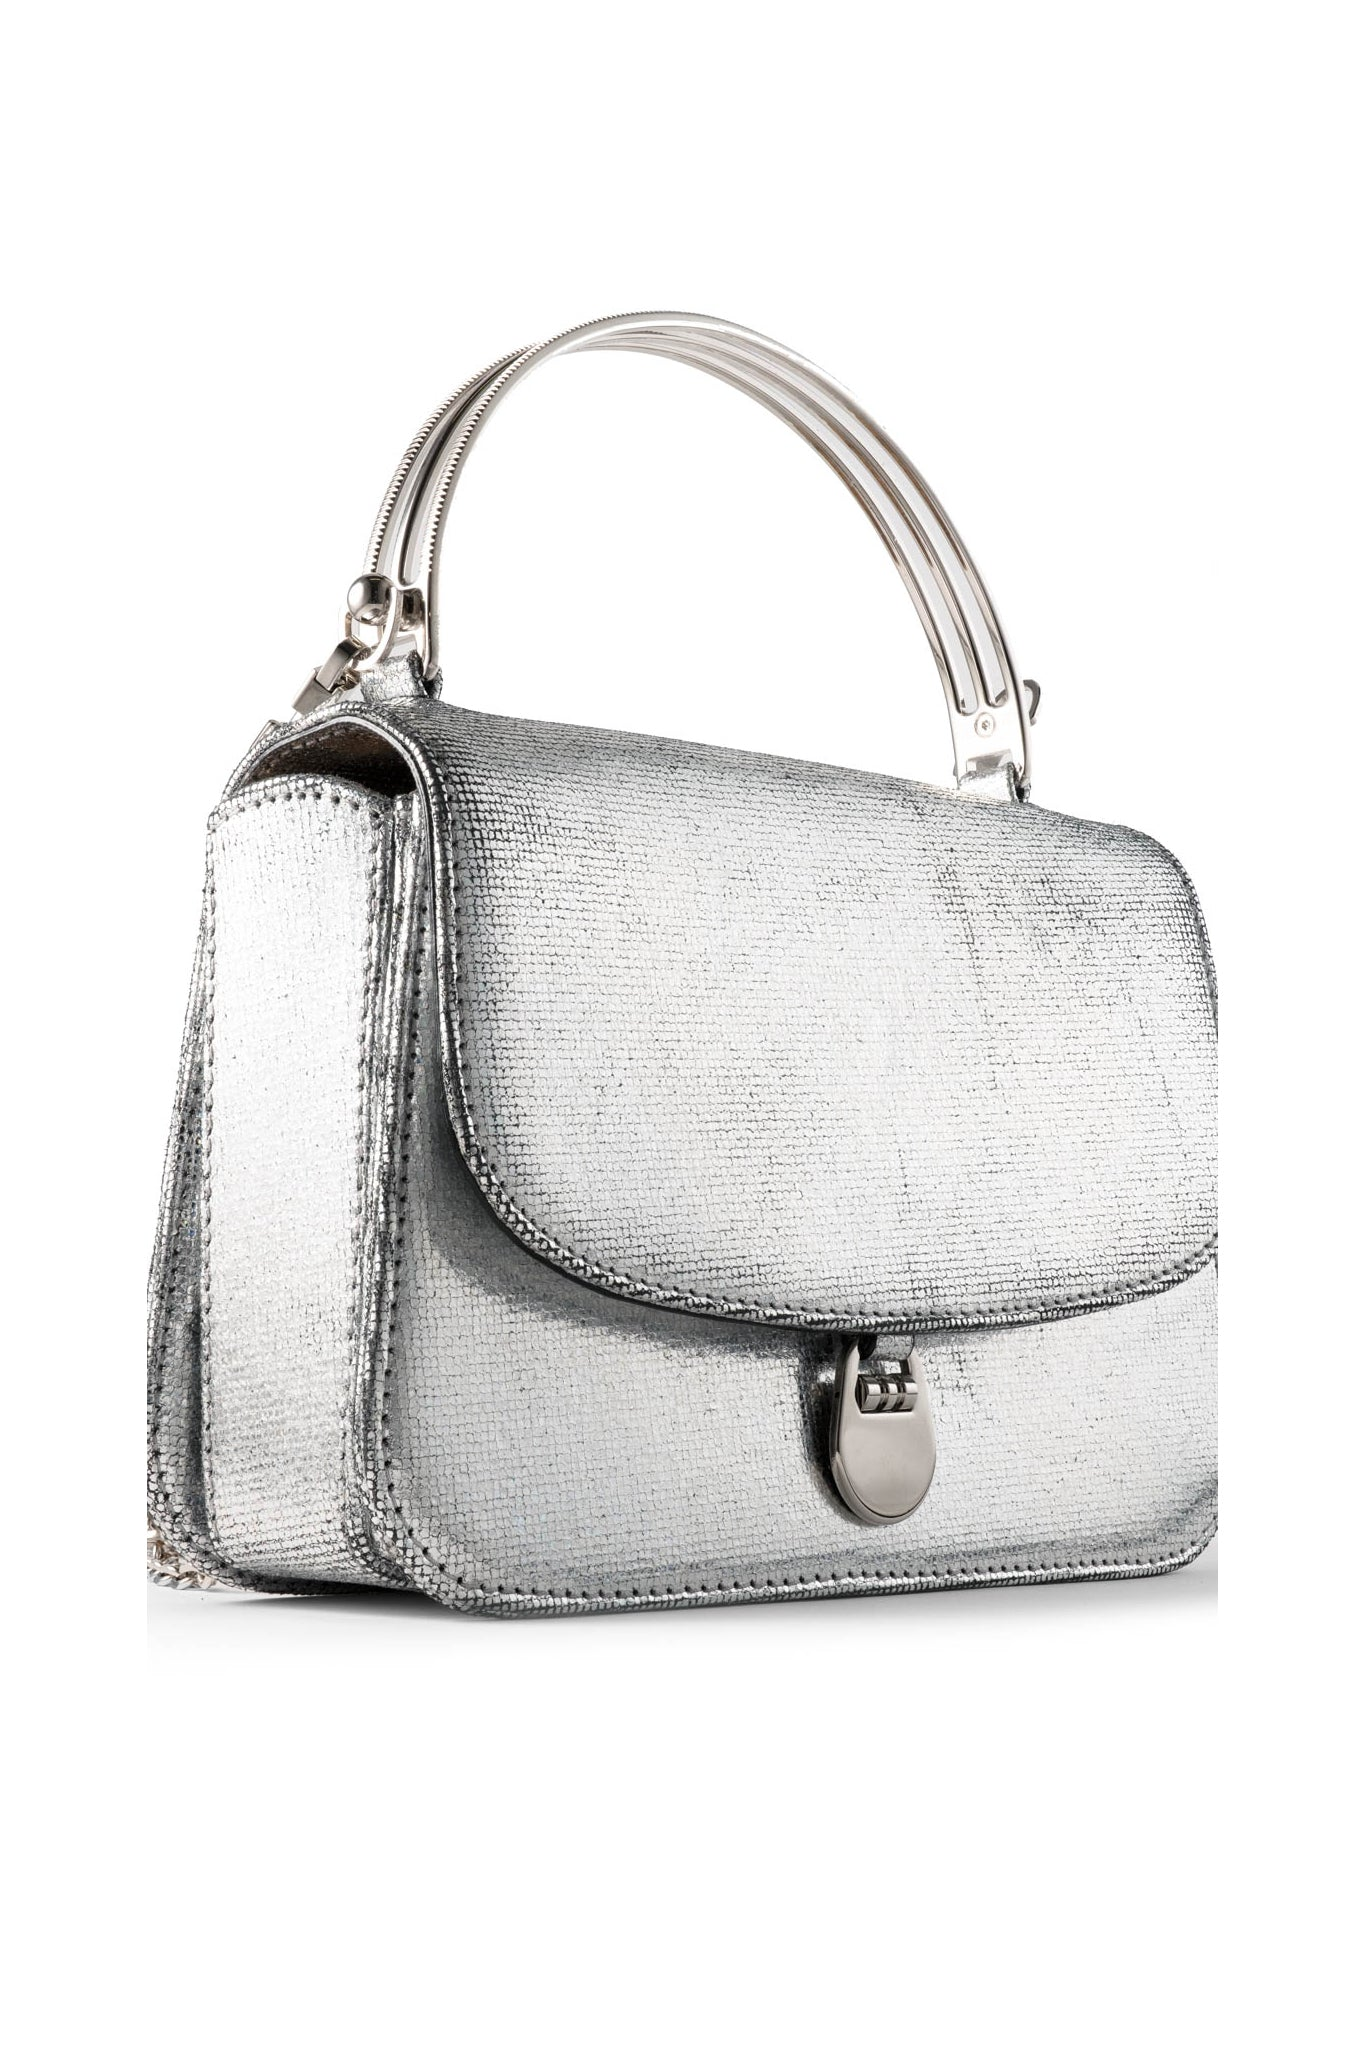 Sabi Top Handle Bag in Silver Holographic Leather